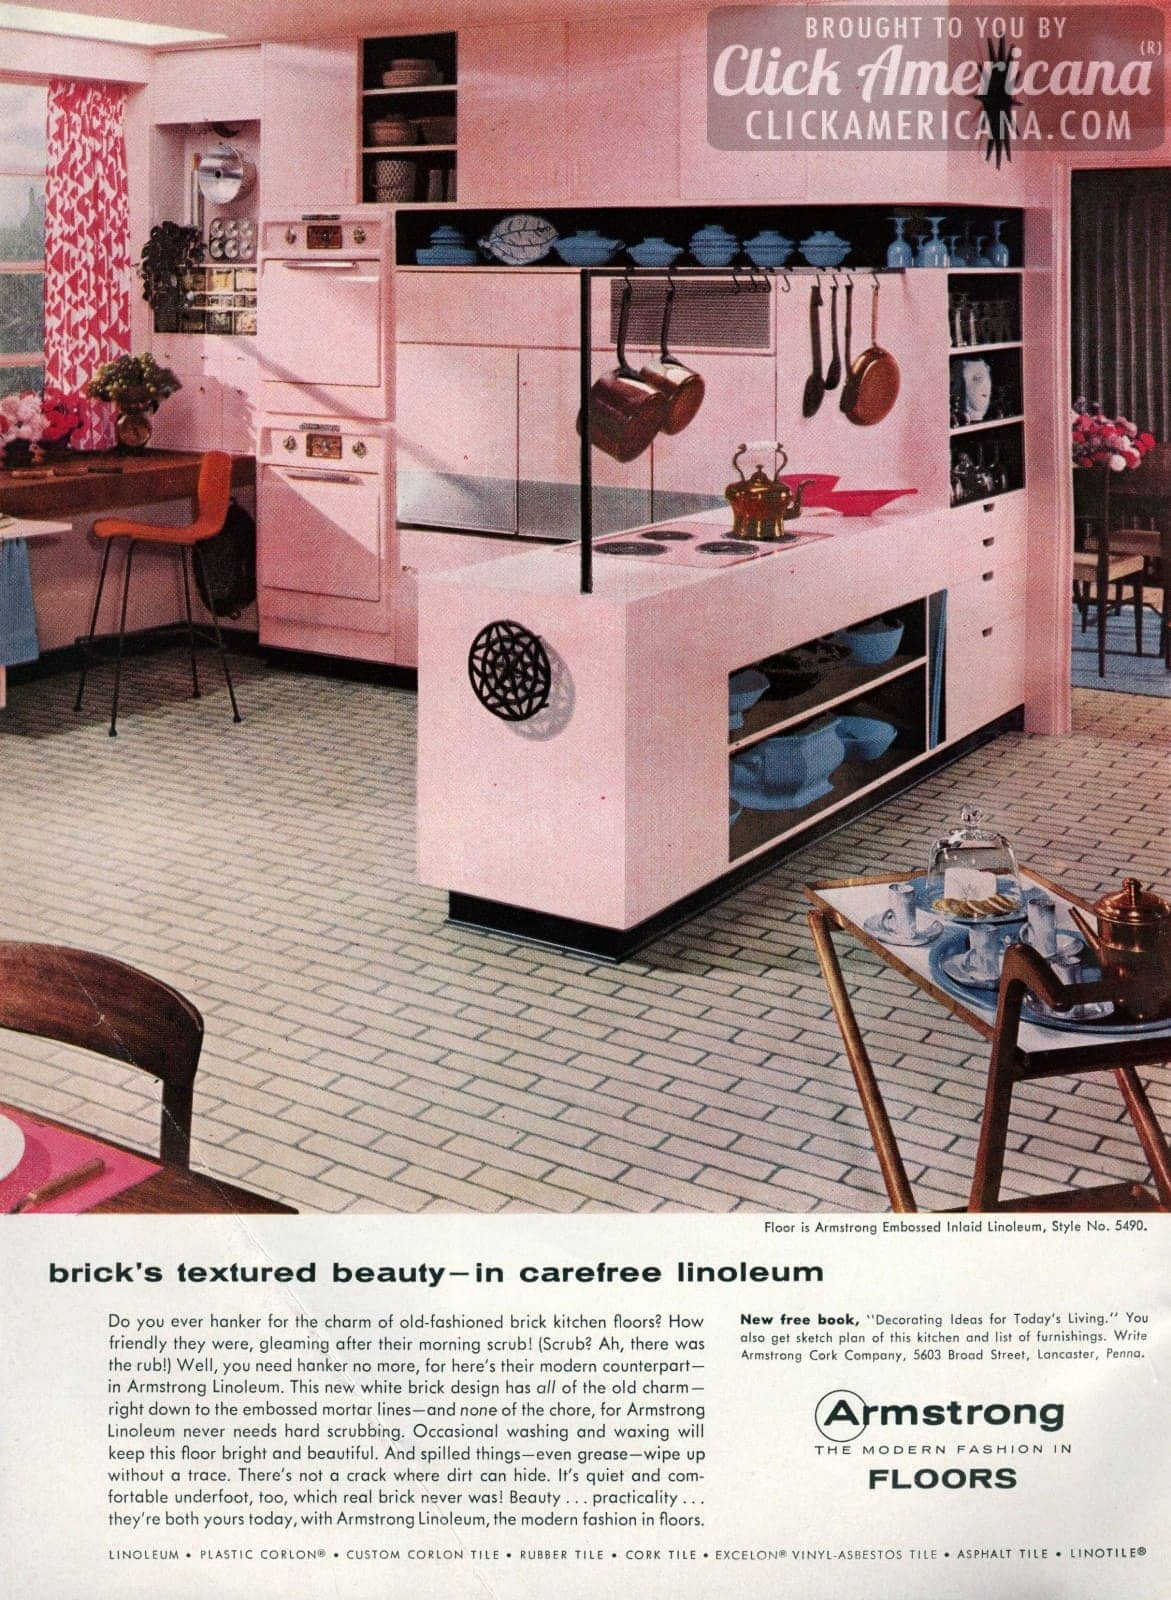 Linoleum Kitchen Floors White Brick Linoleum Floors For Your Pink Kitchen 1956 Click